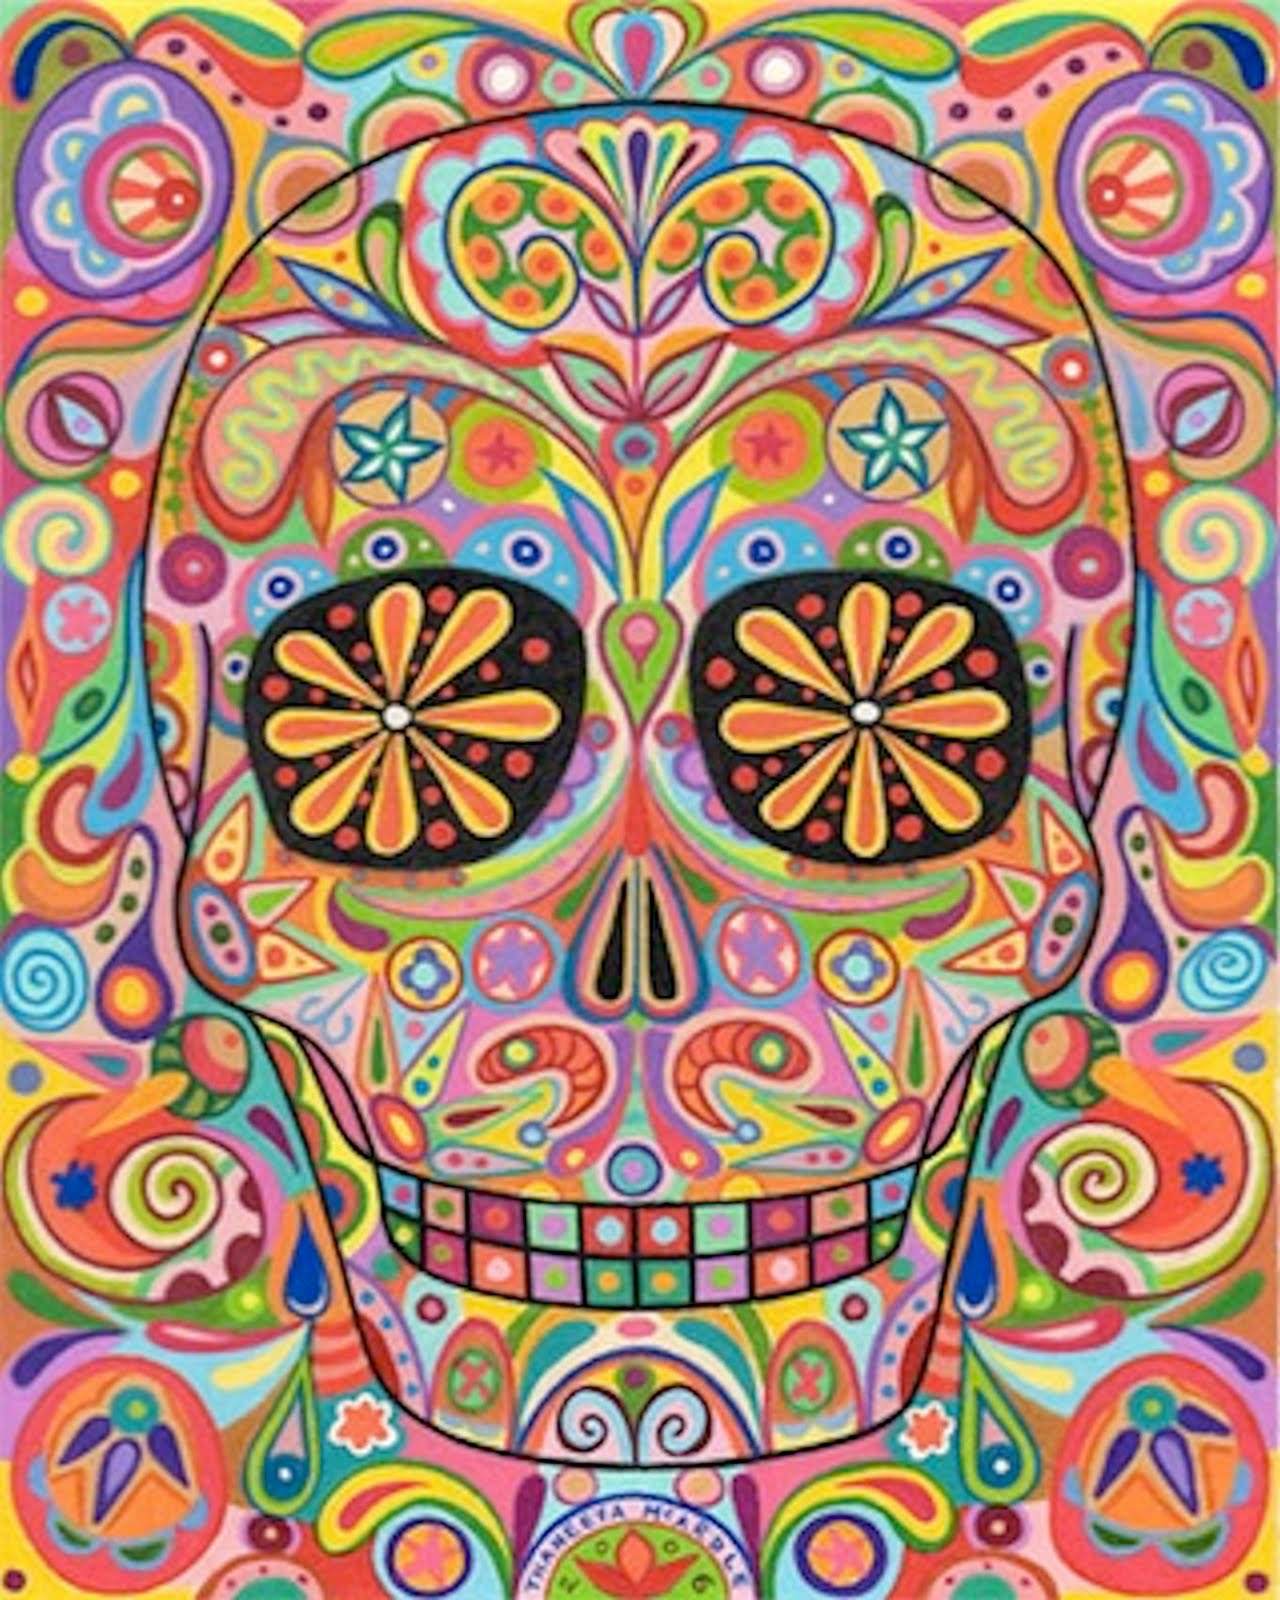 calaveras coloridas latino photo calaveras coloridas latino photo ...